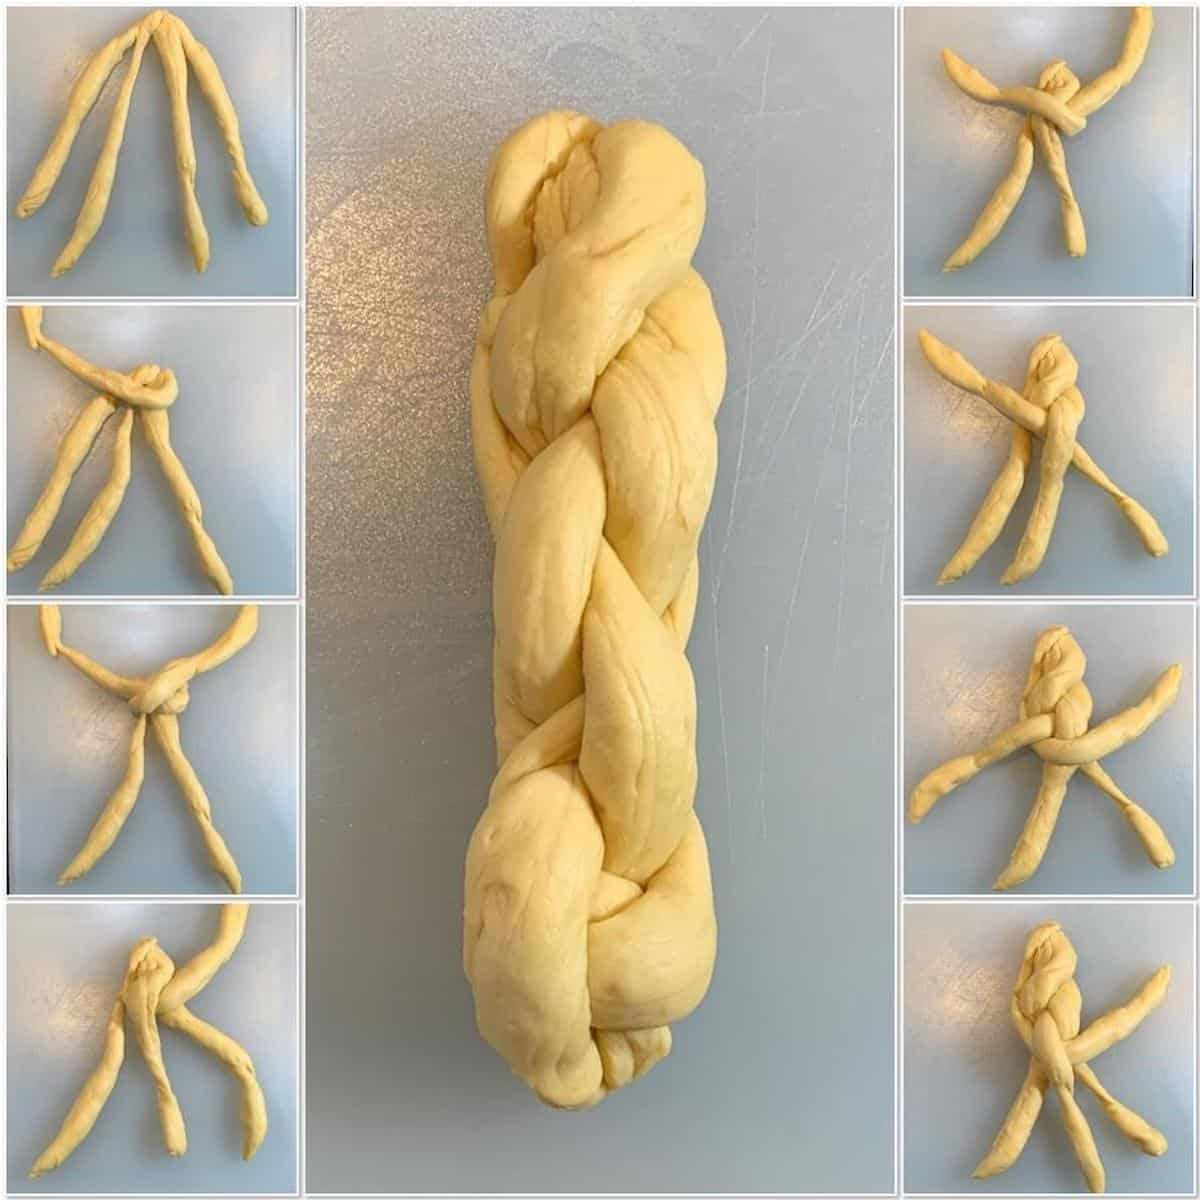 shaping 4 strand braided oblong challah